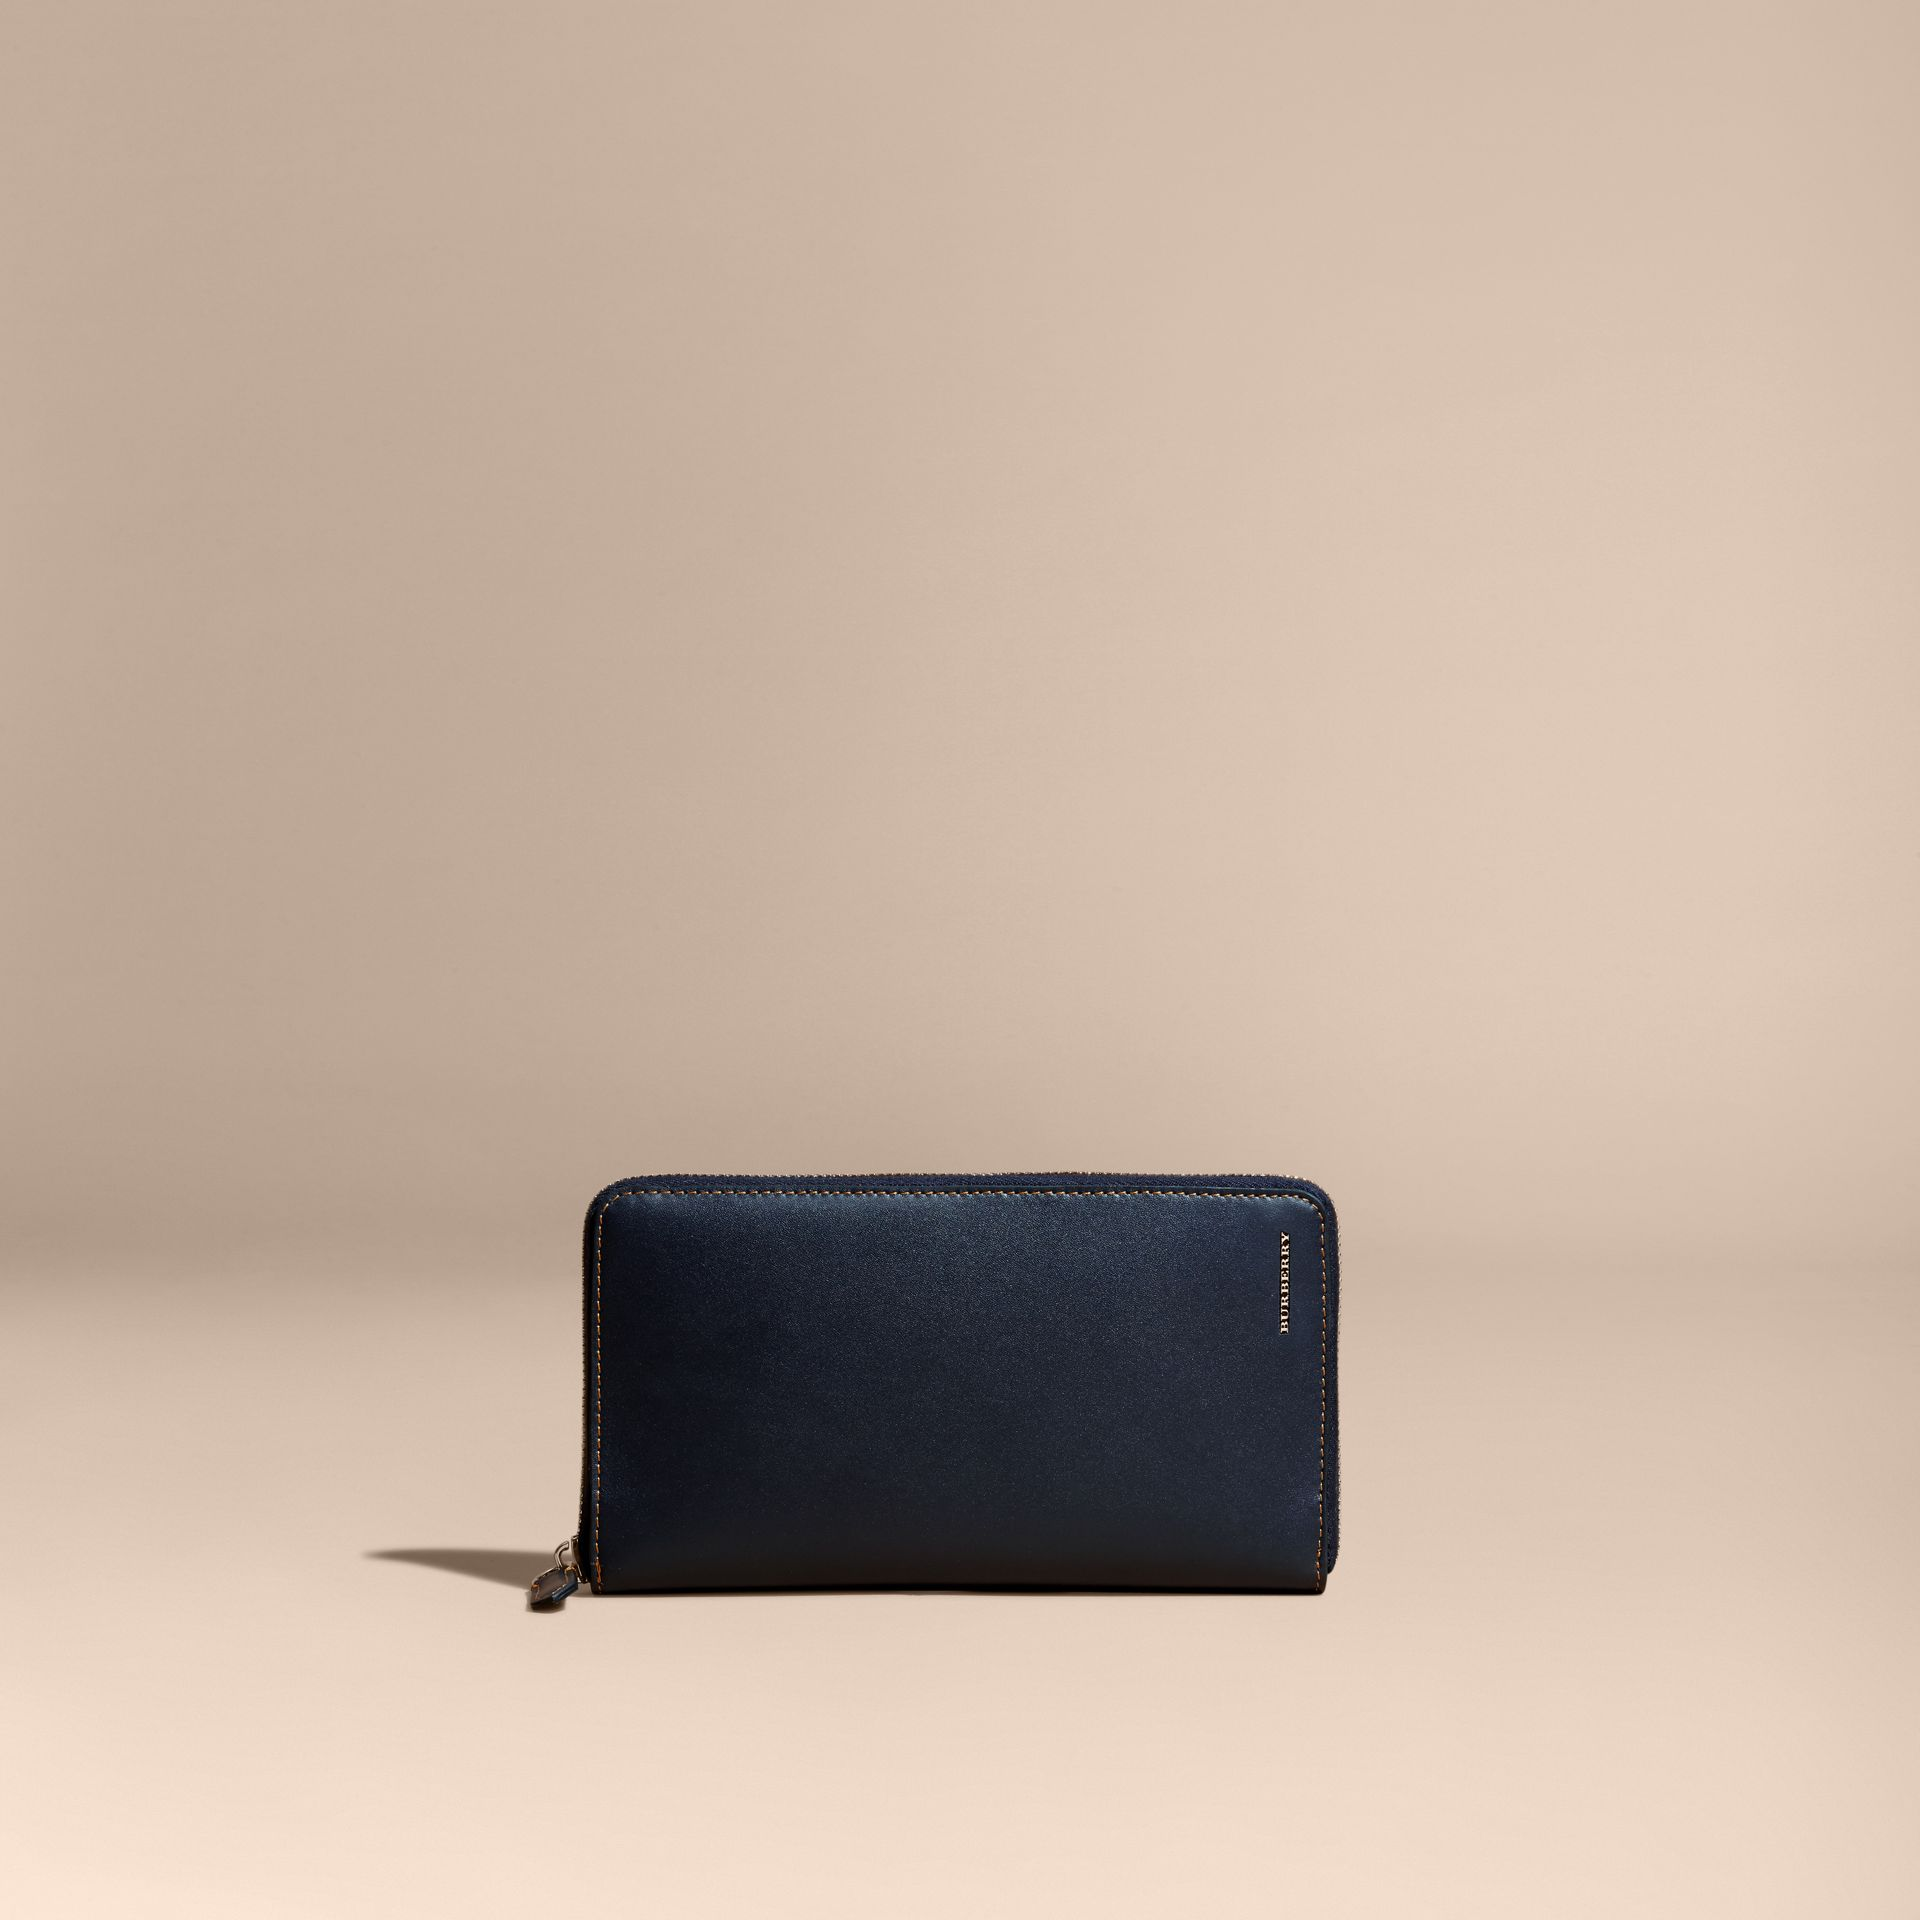 Dark navy Smooth Leather Ziparound Wallet Dark Navy - gallery image 6